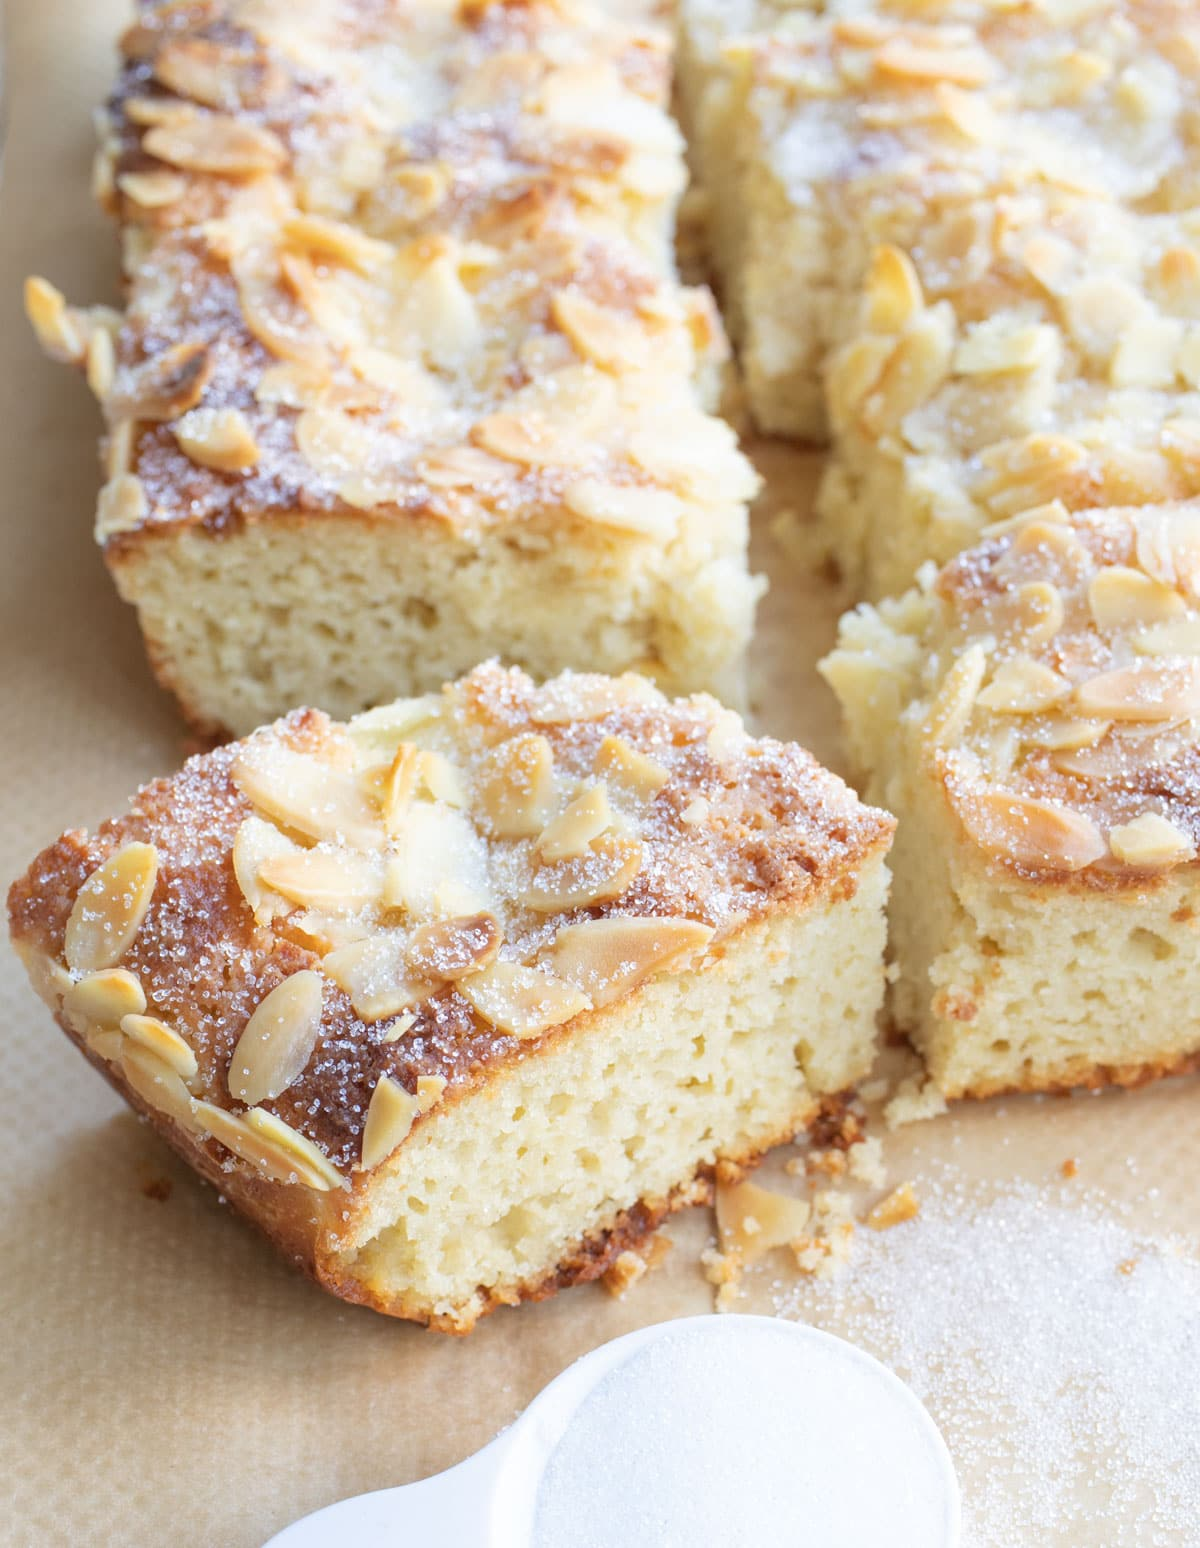 squares of cake topped with almonds and sweetener